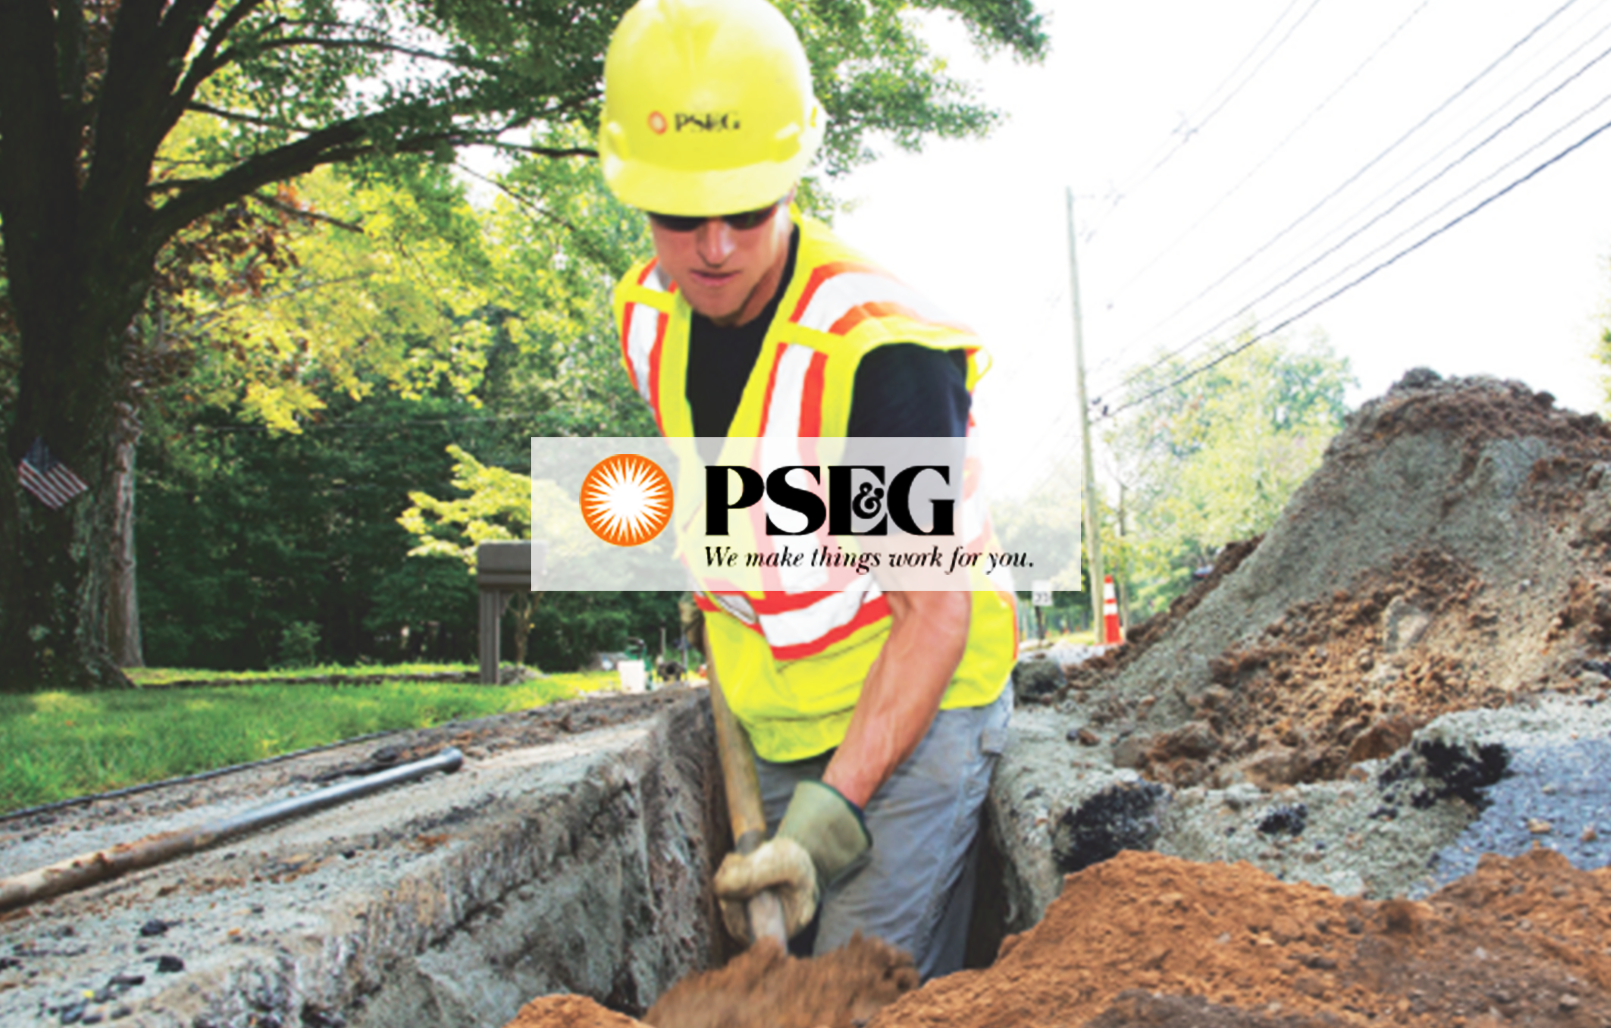 Image of a PSE&G employee working with PSE&G logo on top